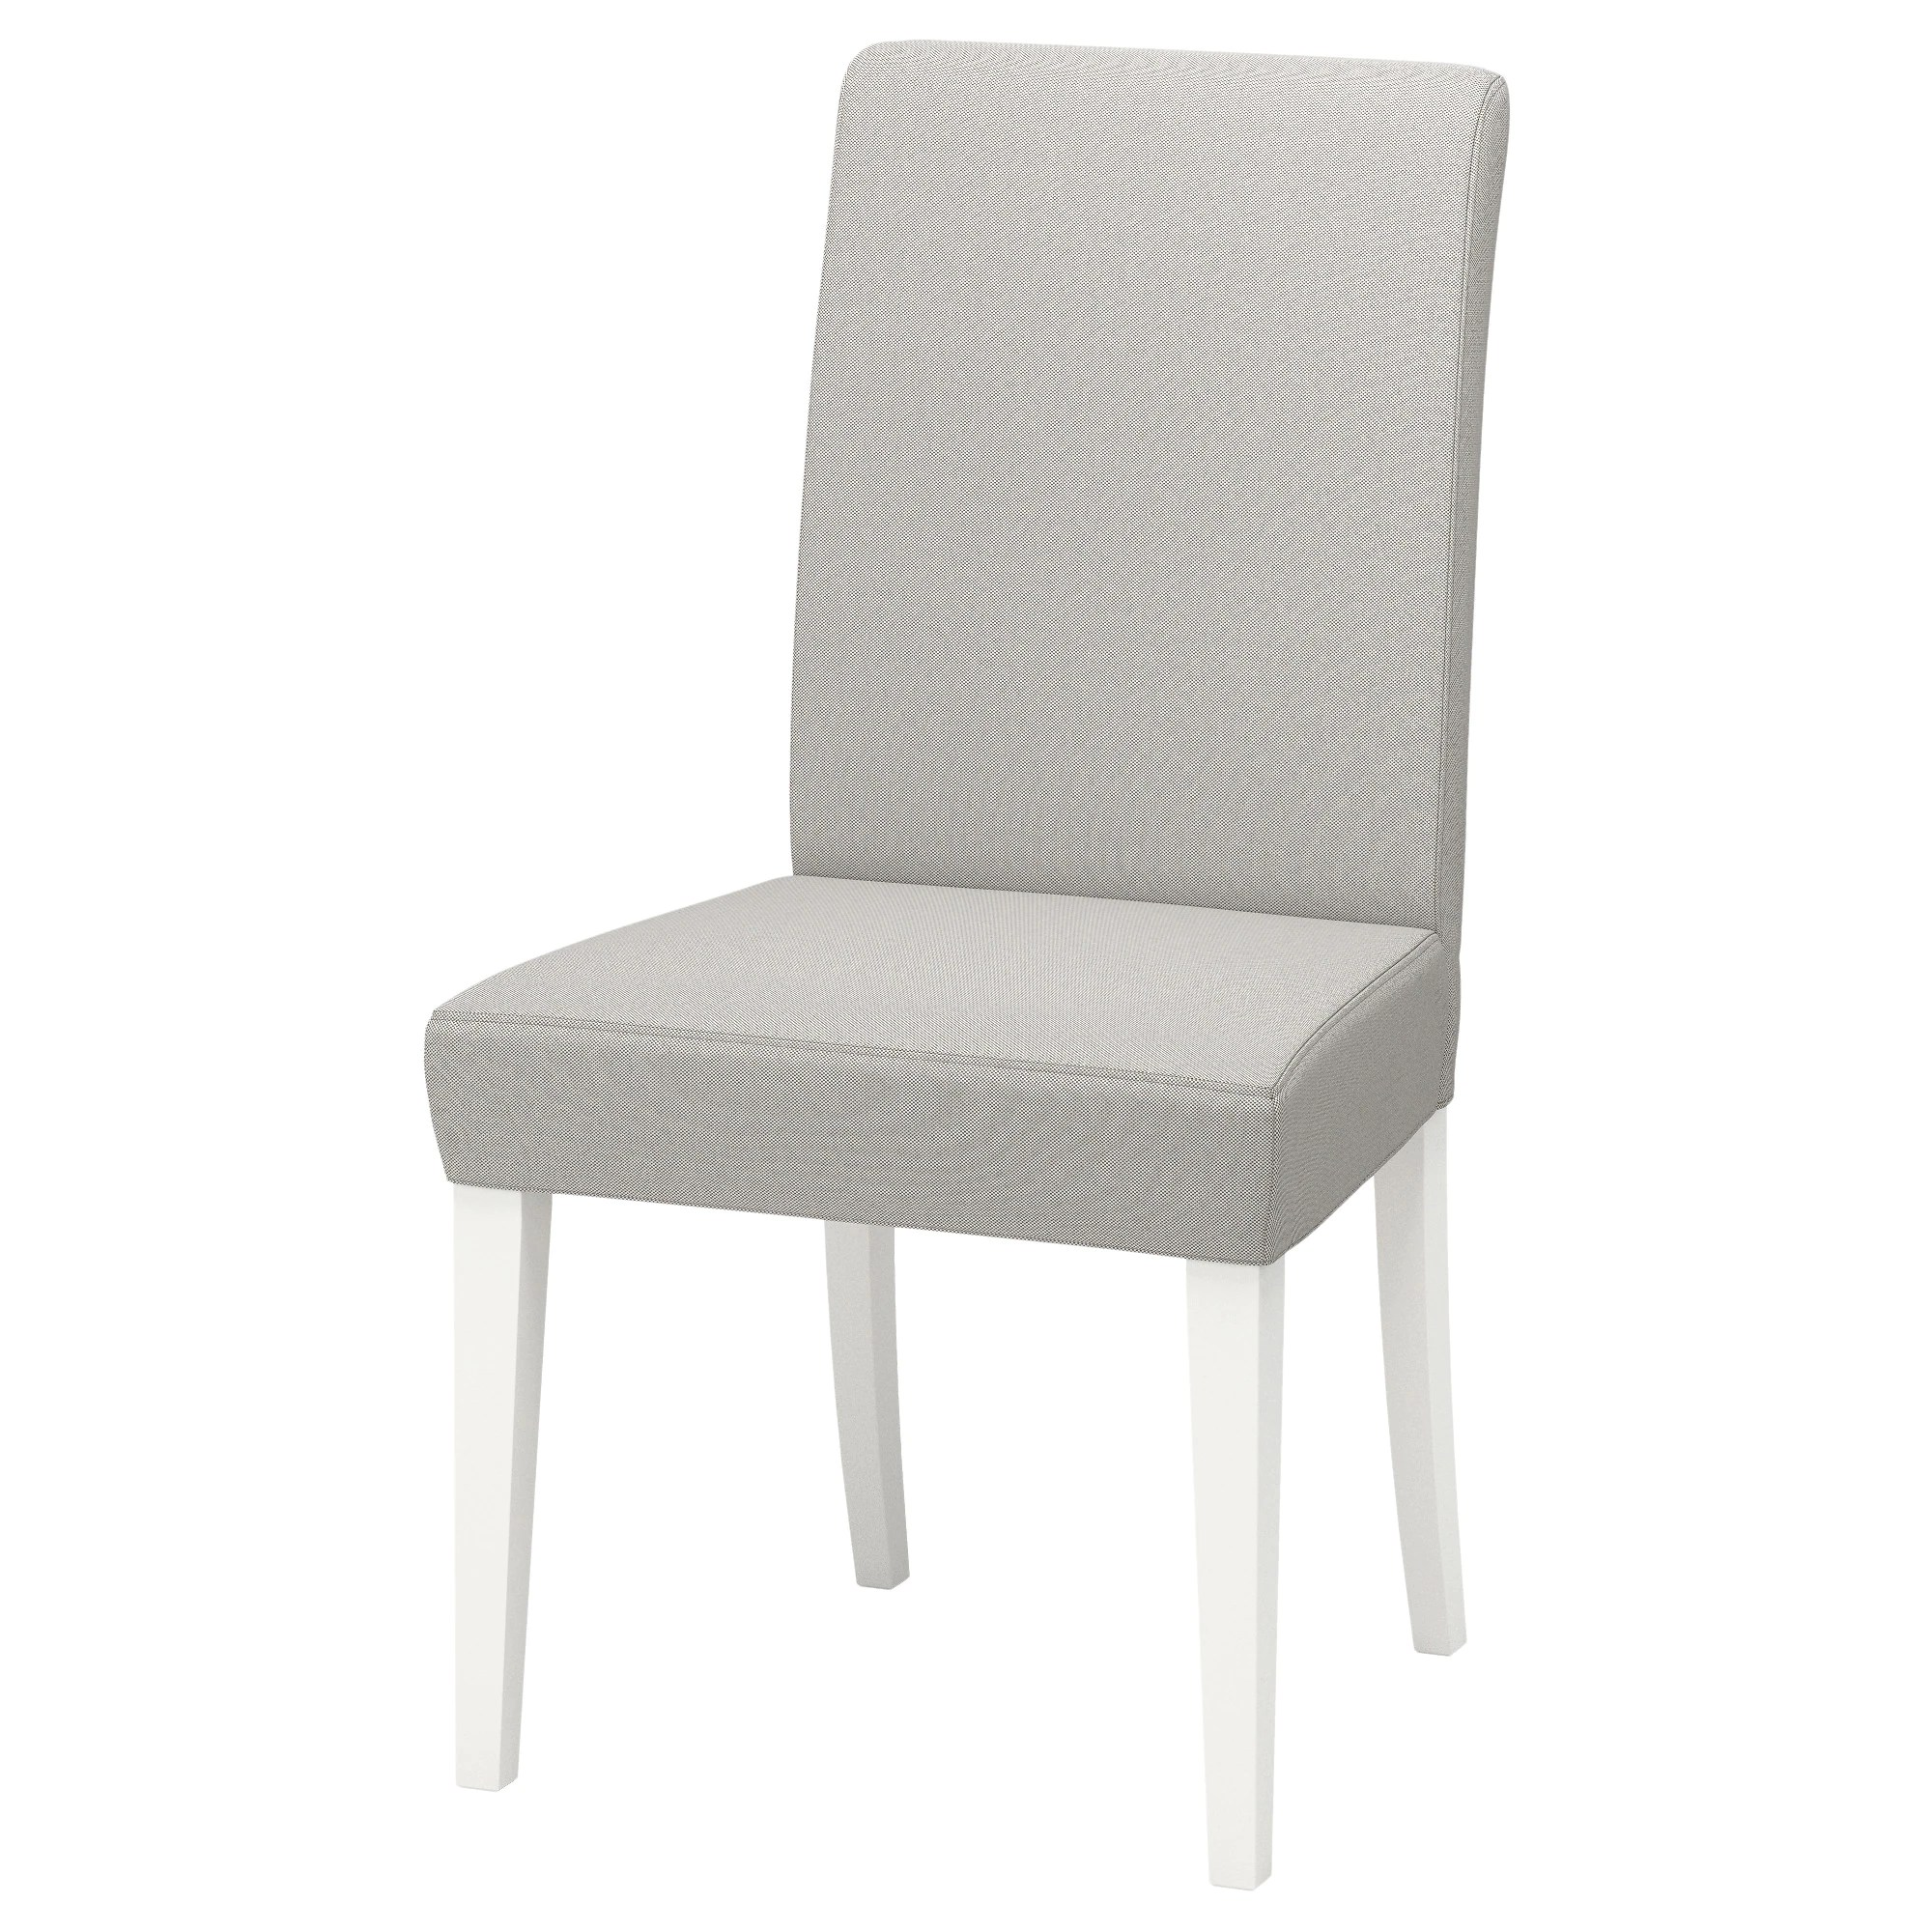 Console Grise Ikea Chair Henriksdal White Orrsta Light Grey